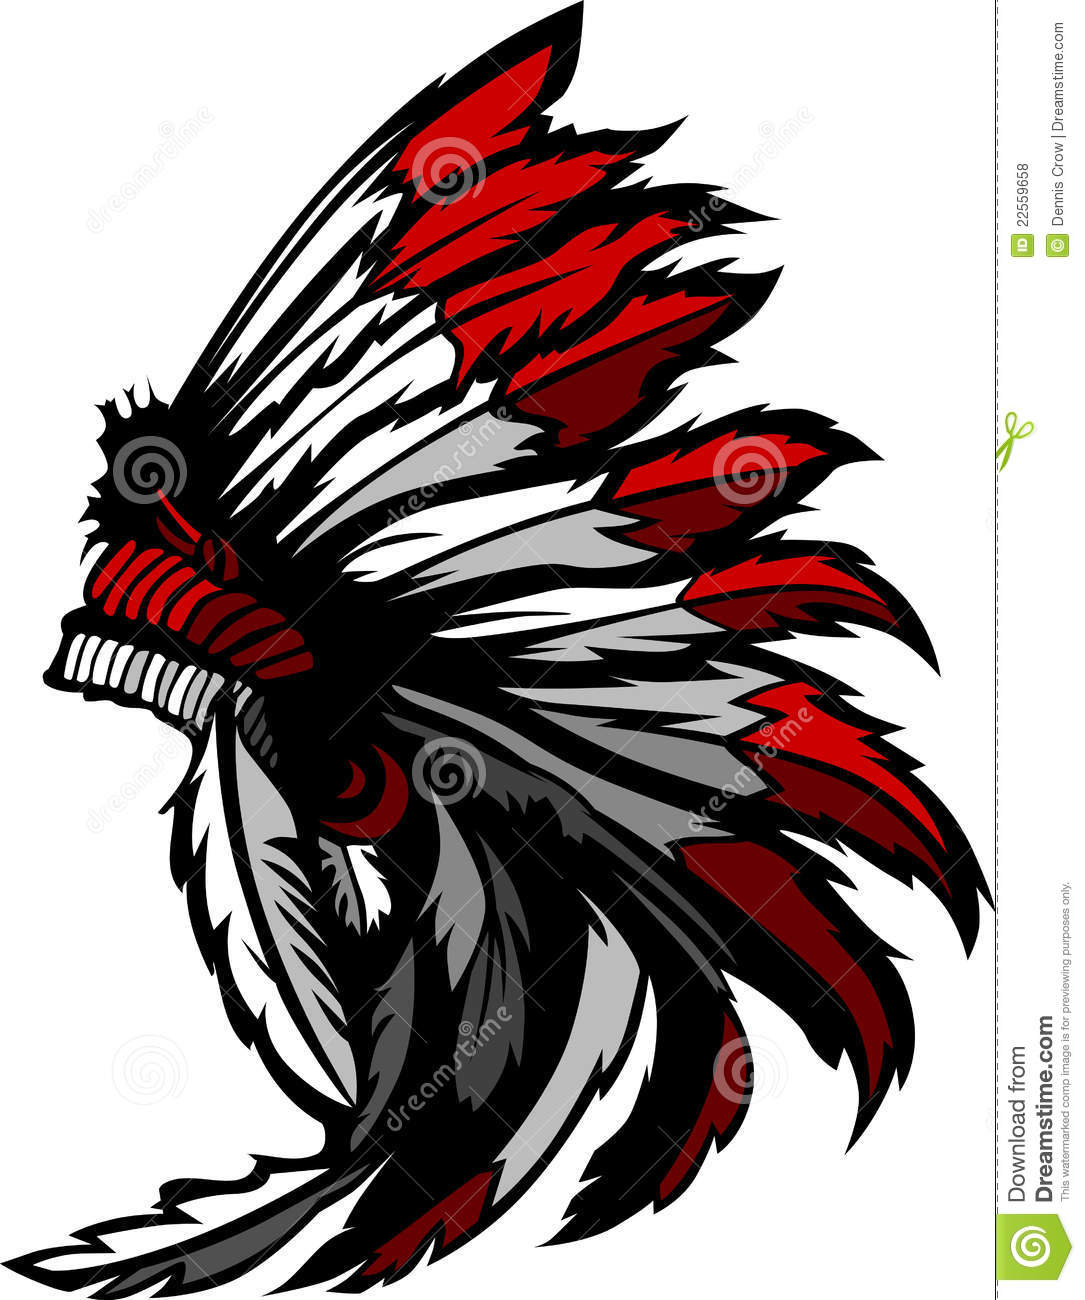 American Native Indian Feather Headress Royalty Free Stock Photos